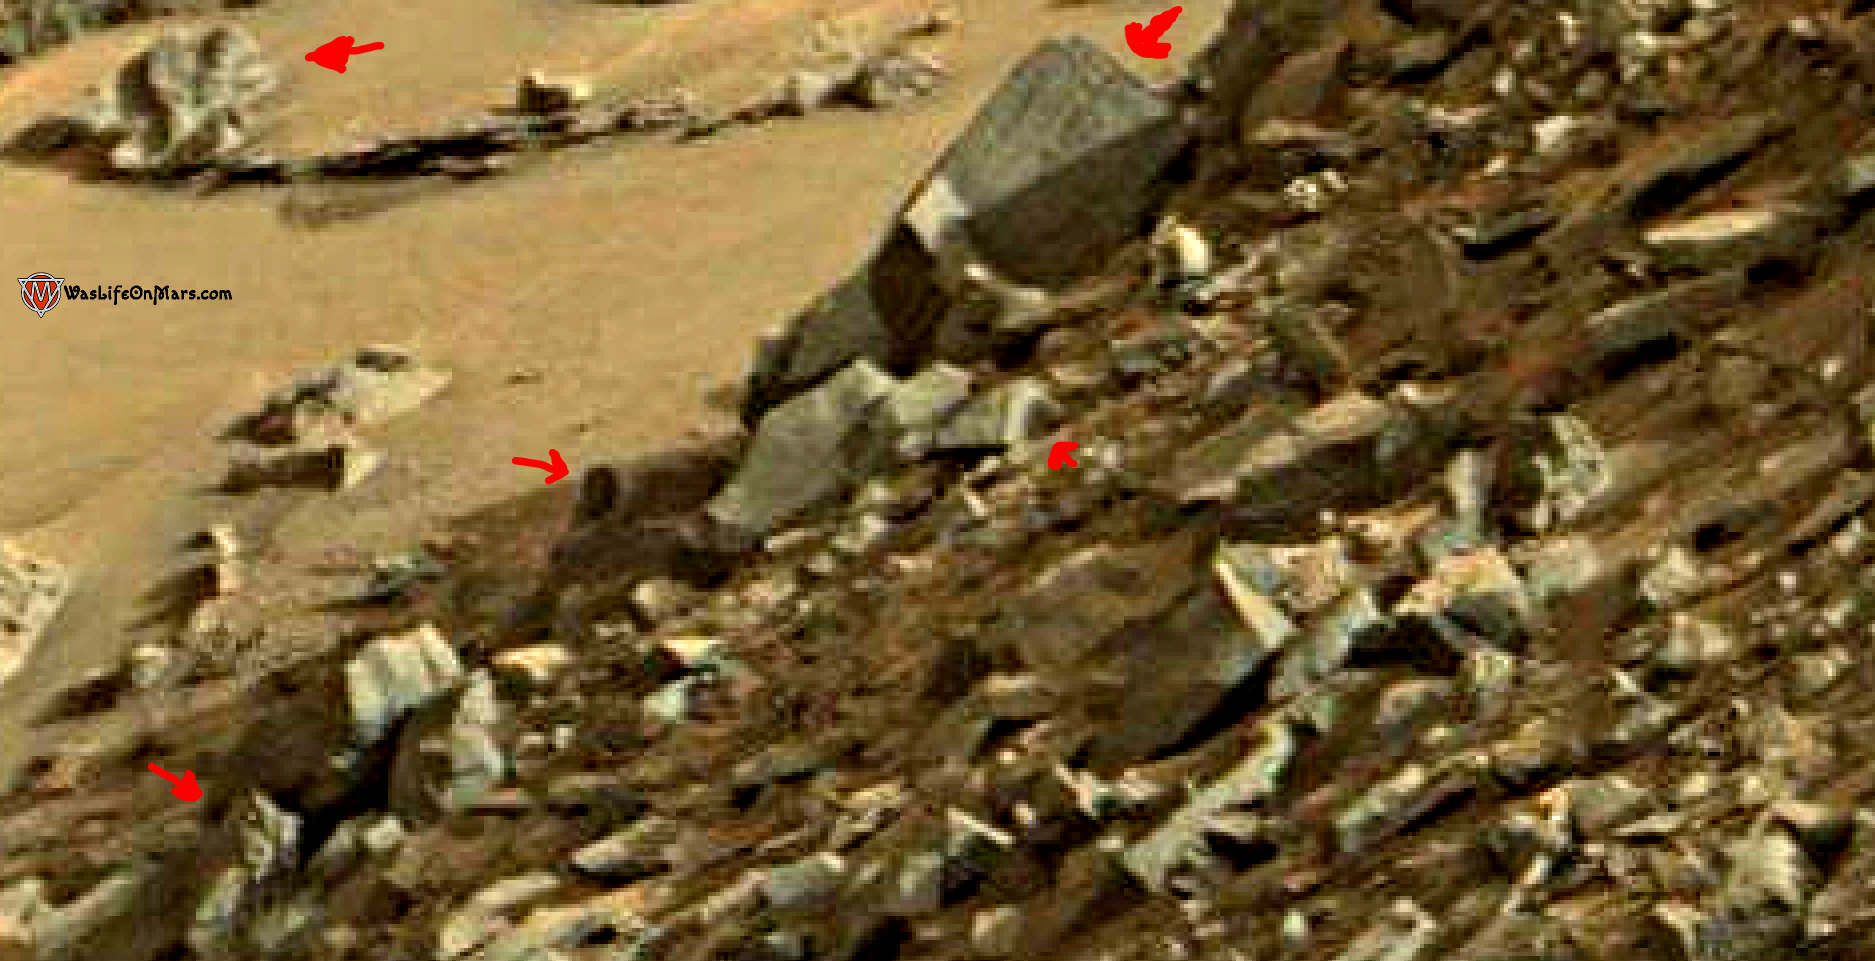 mars sol 1419 anomaly artifacts 19a was life on mars